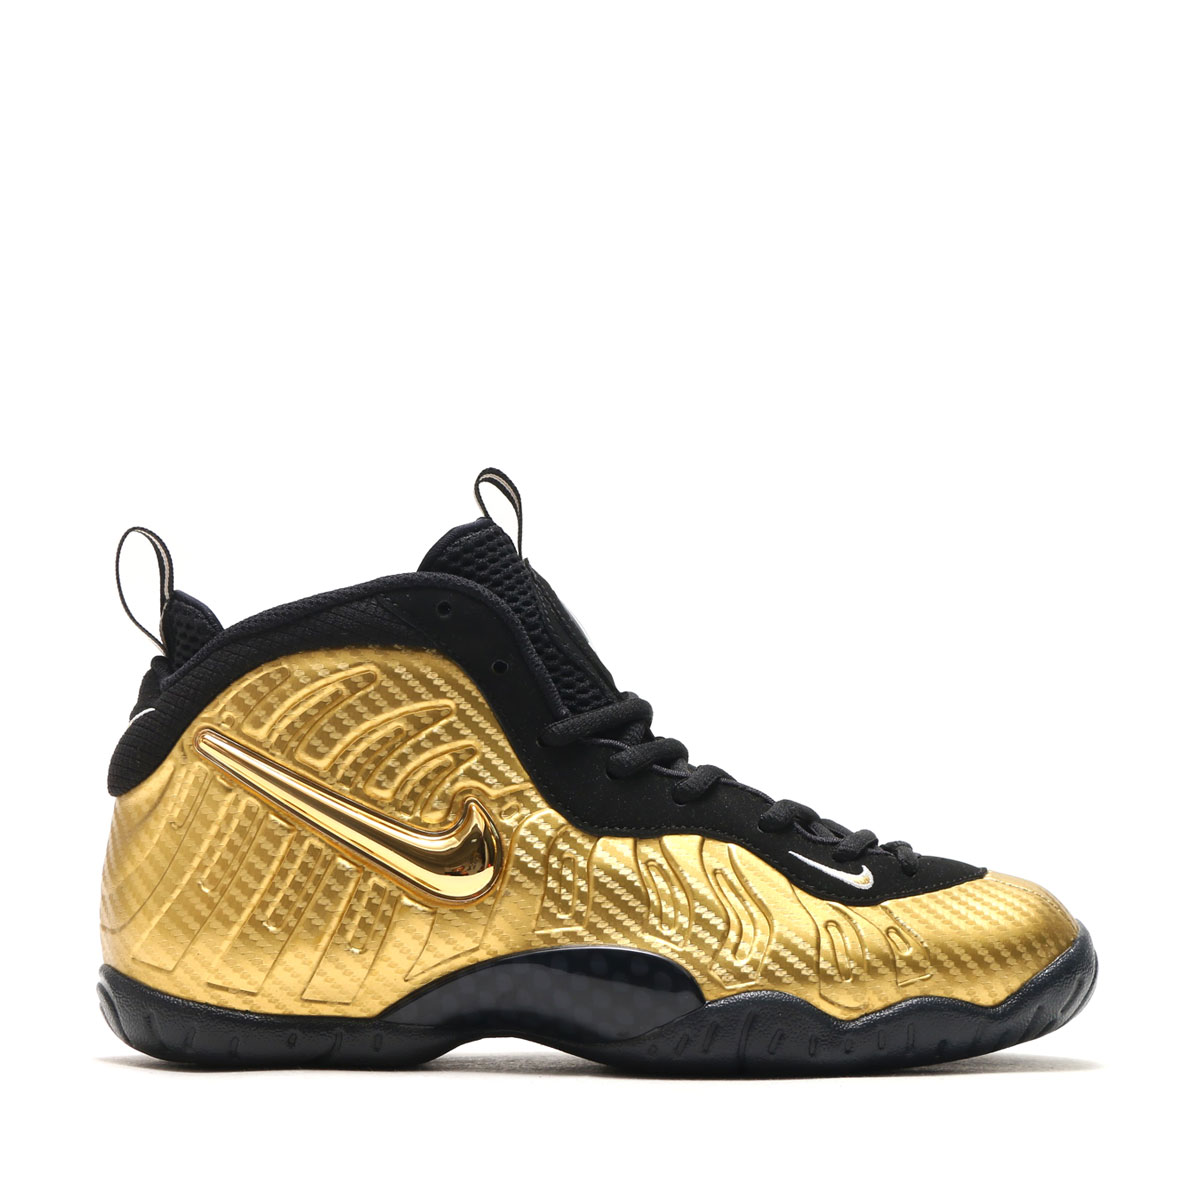 e96ae1999a80 NIKE LITTLE POSITE PRO (GS) (ナイキリトルポジットプロ GS) METALLIC GOLD BLACK-BLACK-WHITE  17HO-S